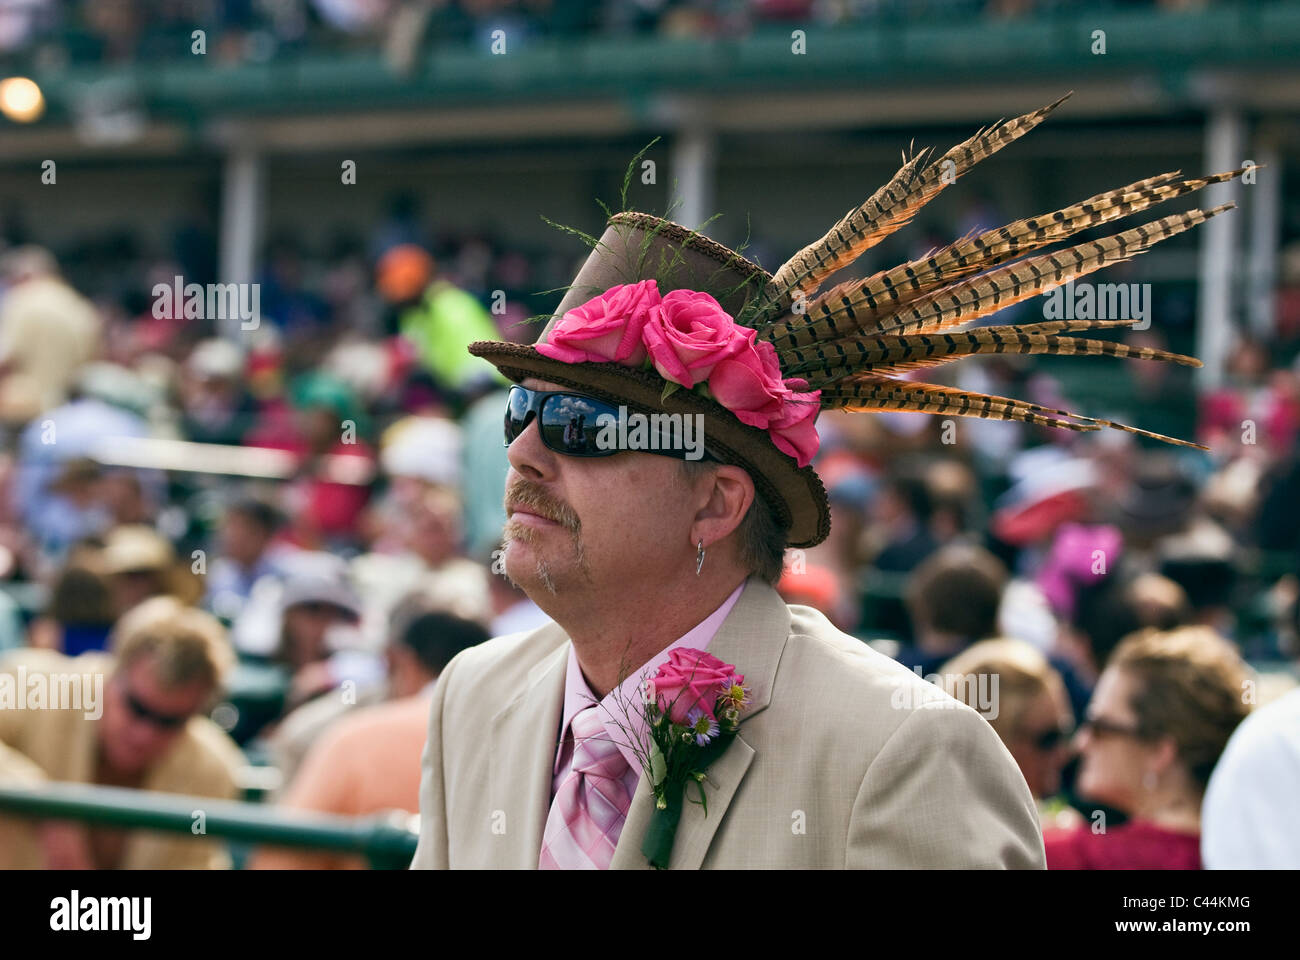 kentucky derby hat stock photos kentucky derby hat stock images